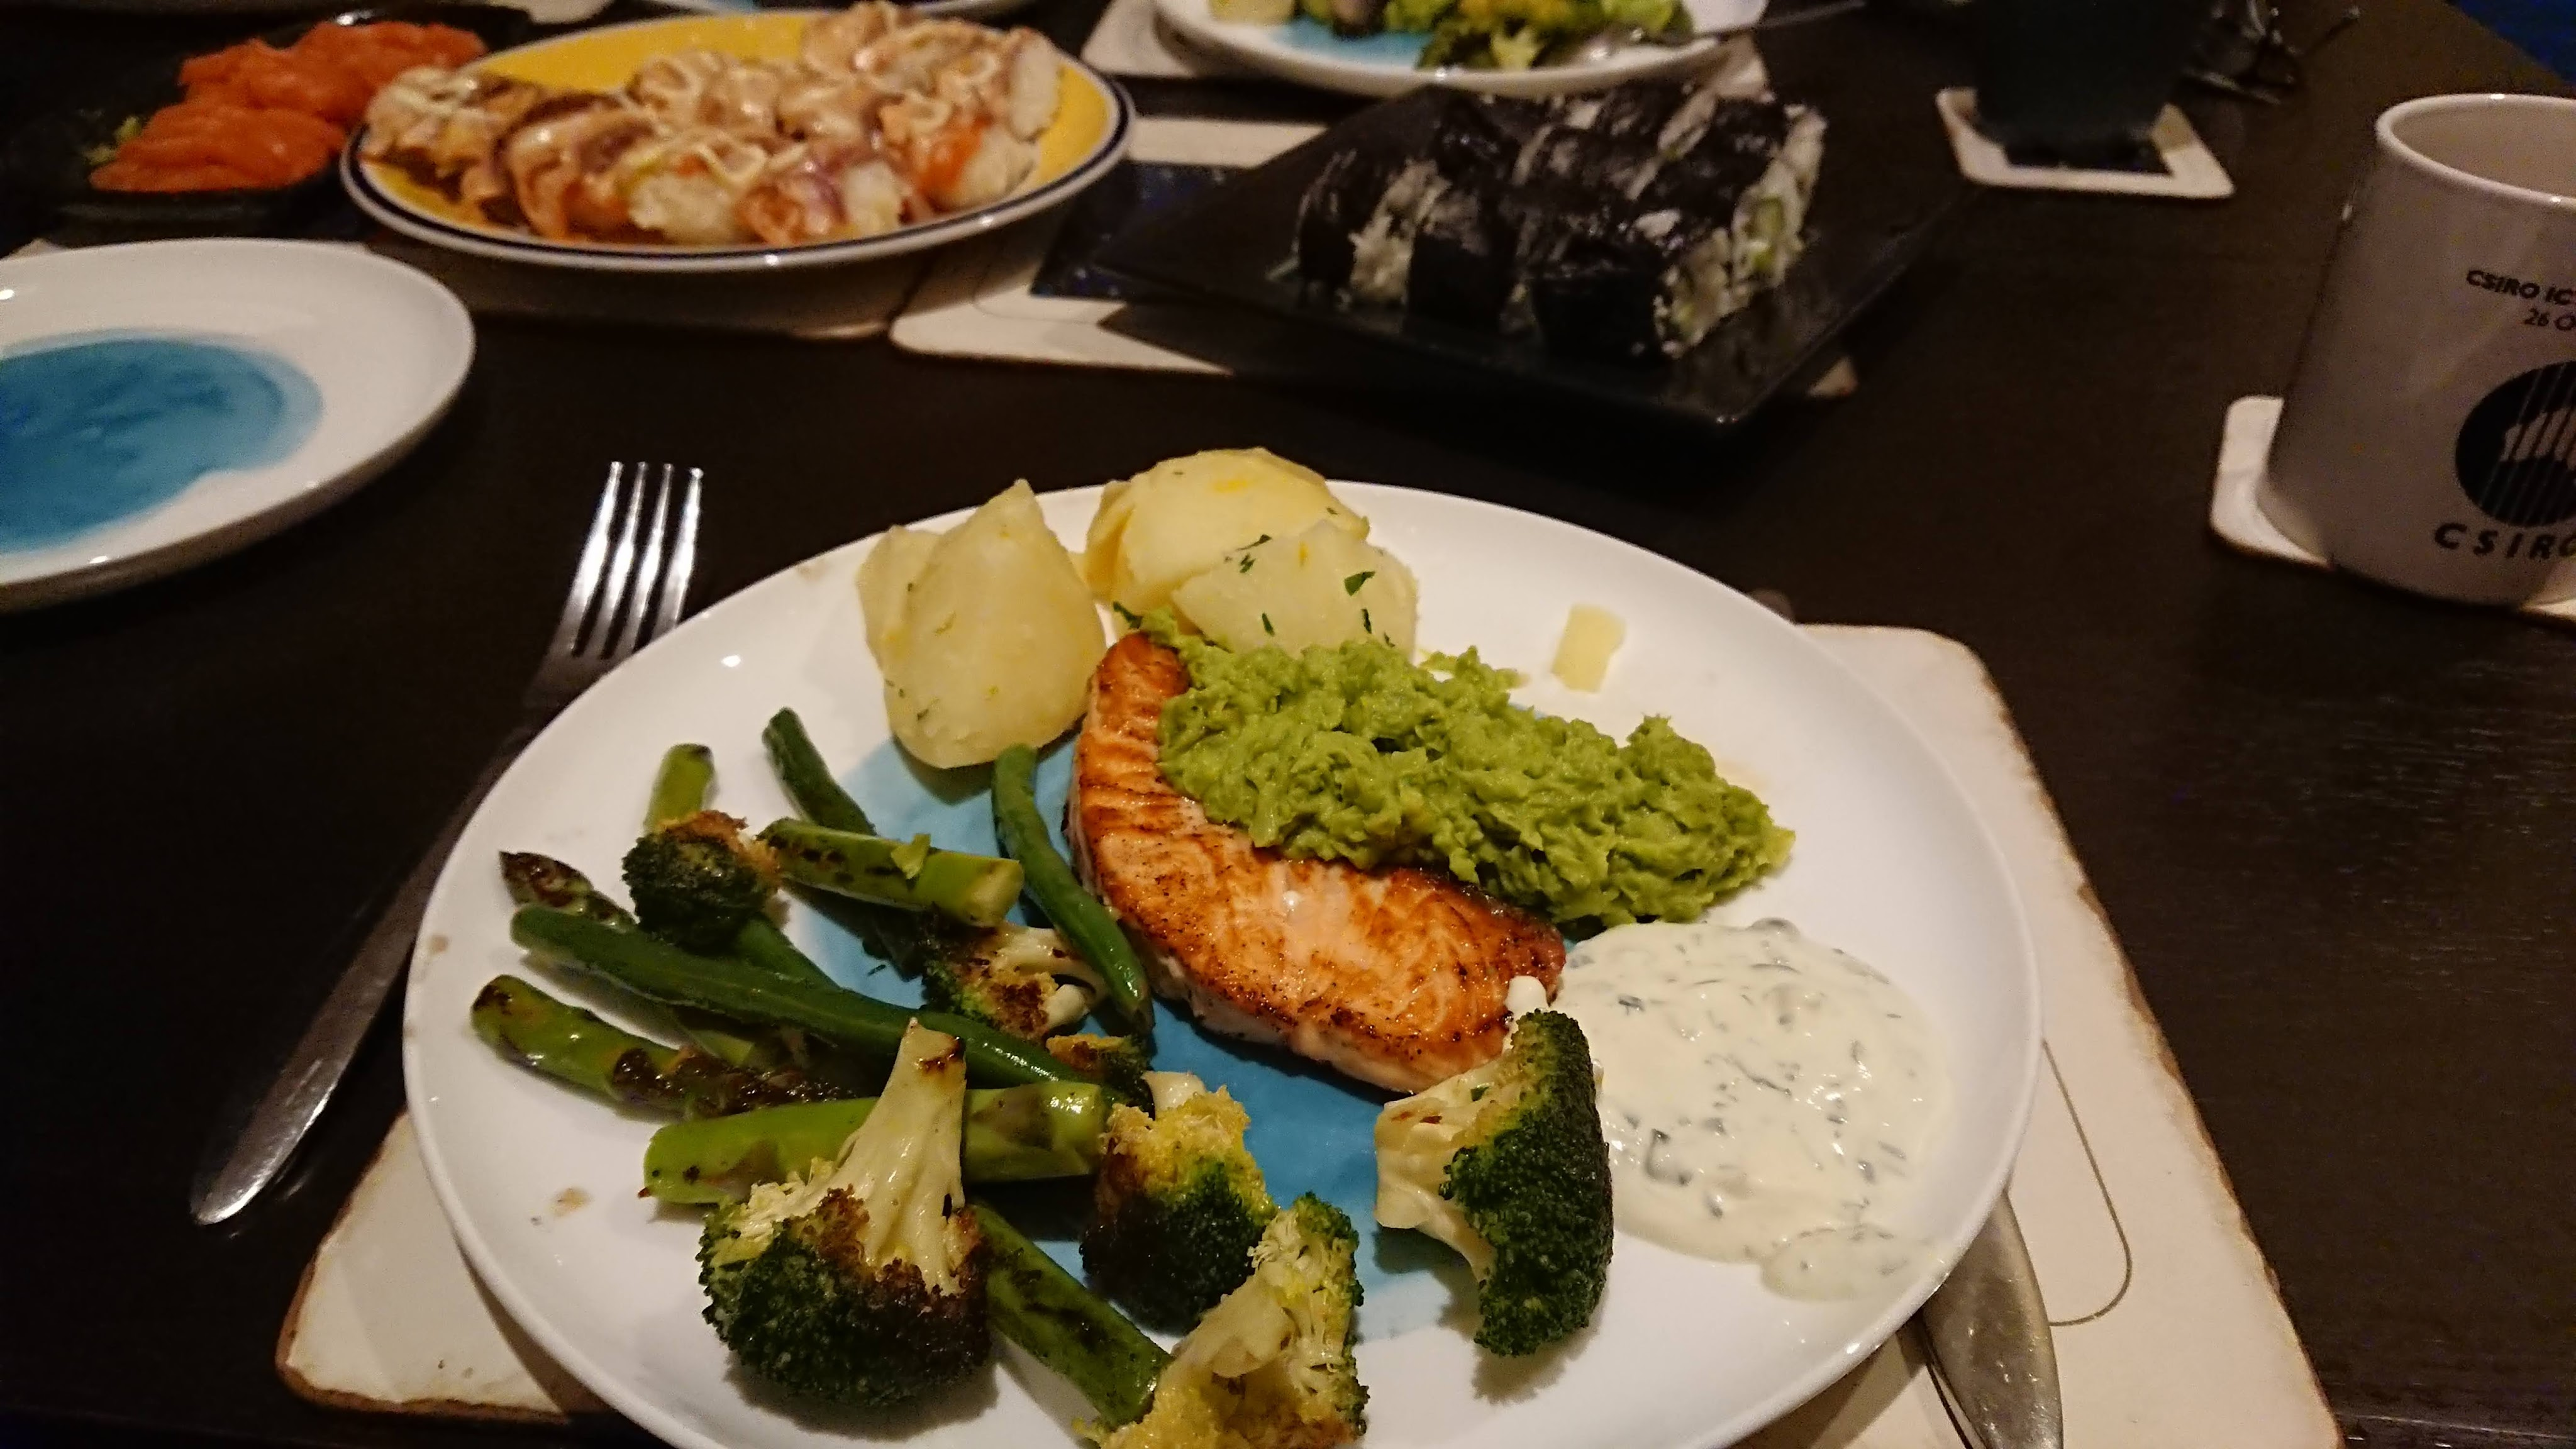 Salmon with pea mash and vegetables.